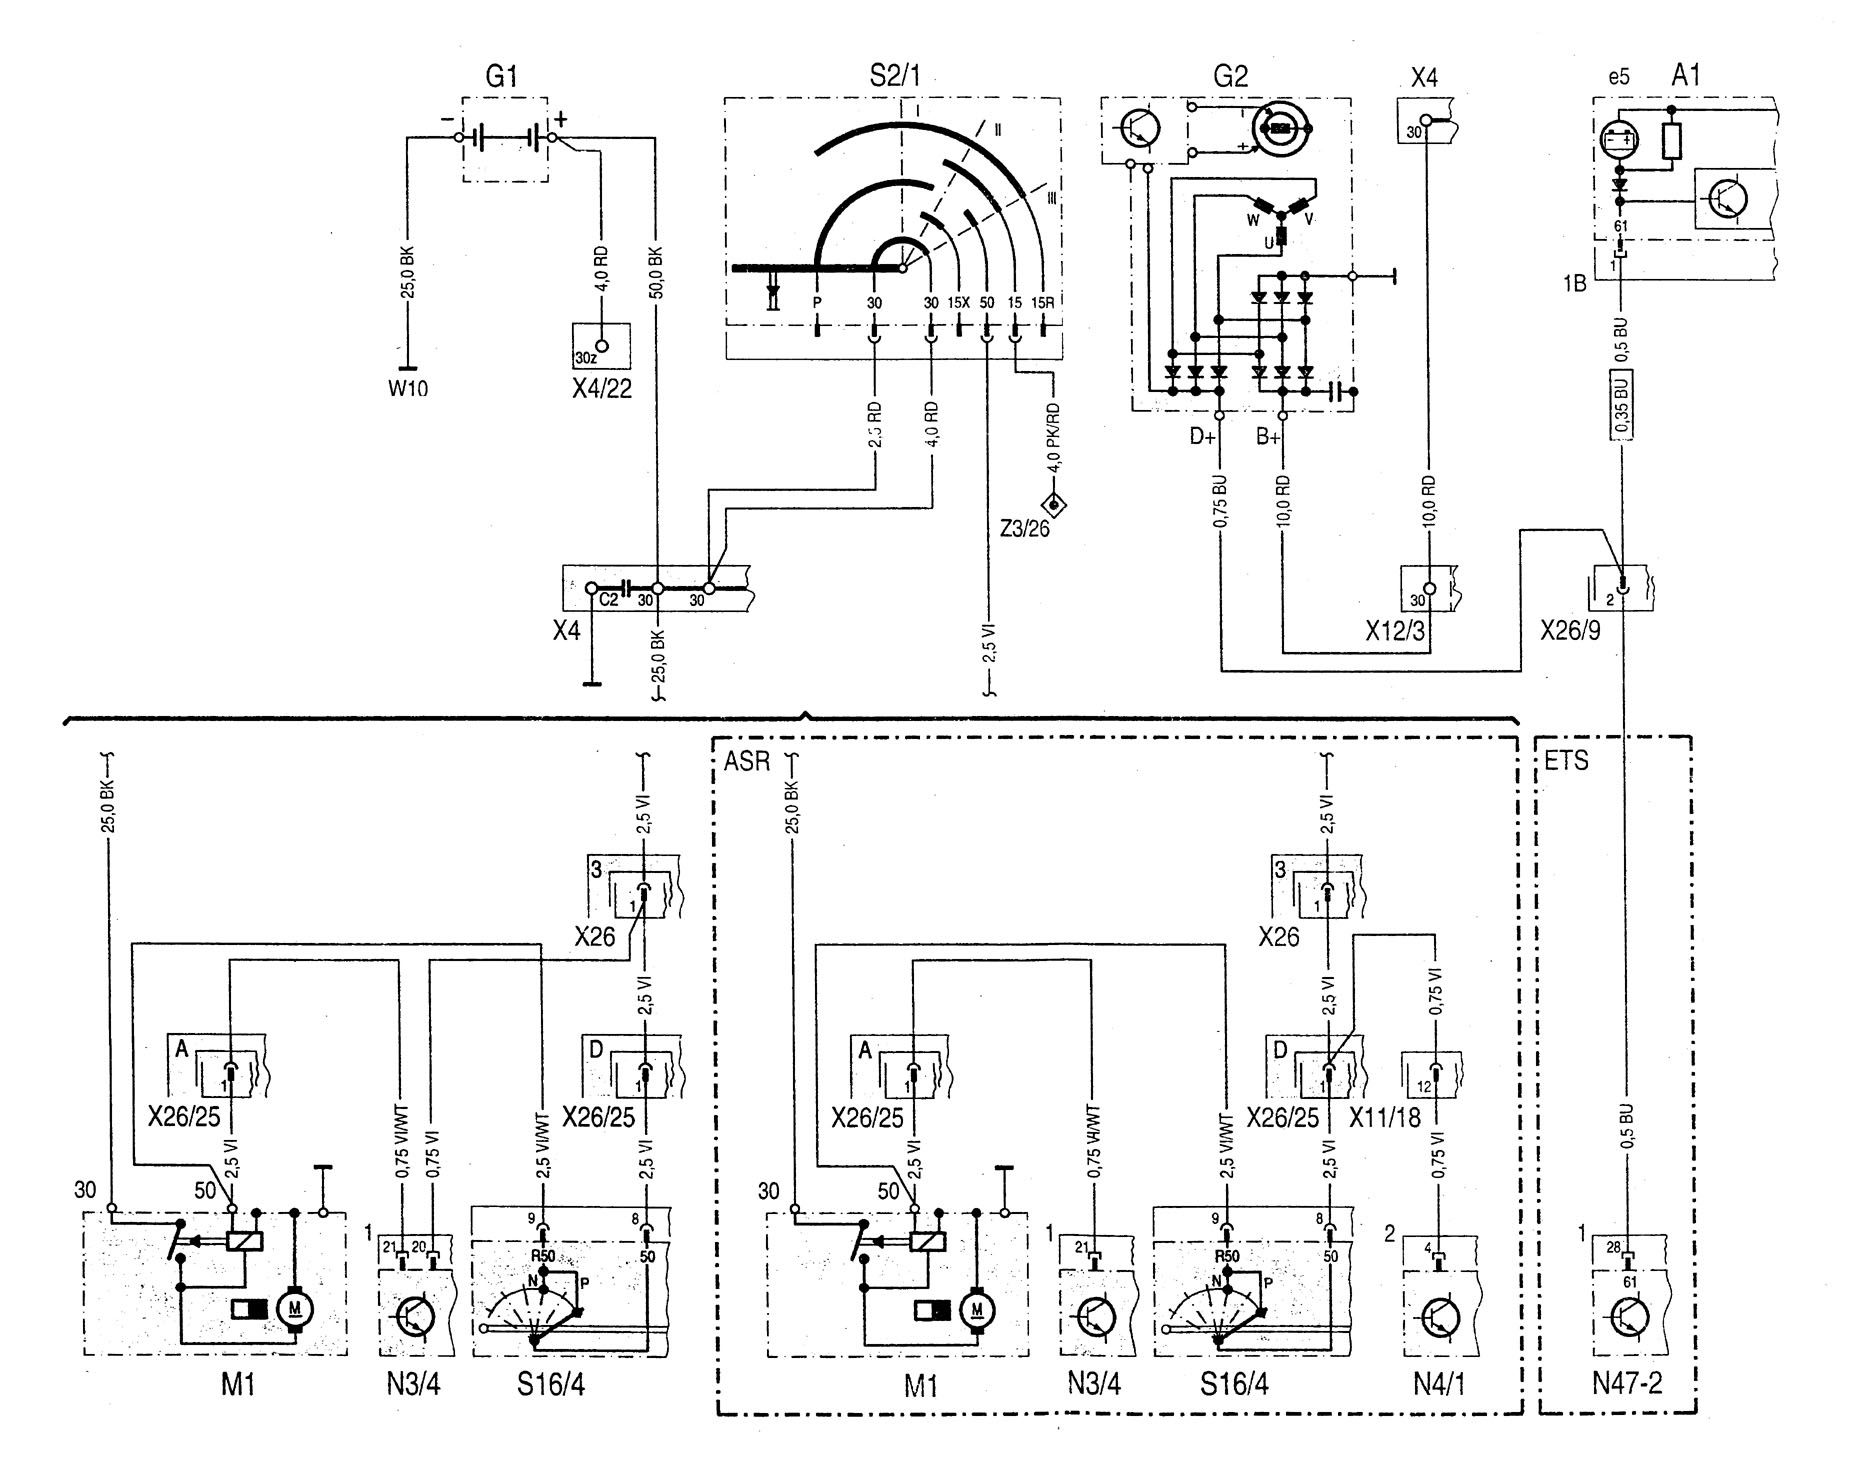 hight resolution of mercedes benz wiring schematics wiring library rh 34 kandelhof restaurant de mercedes benz wiring diagram mercedes